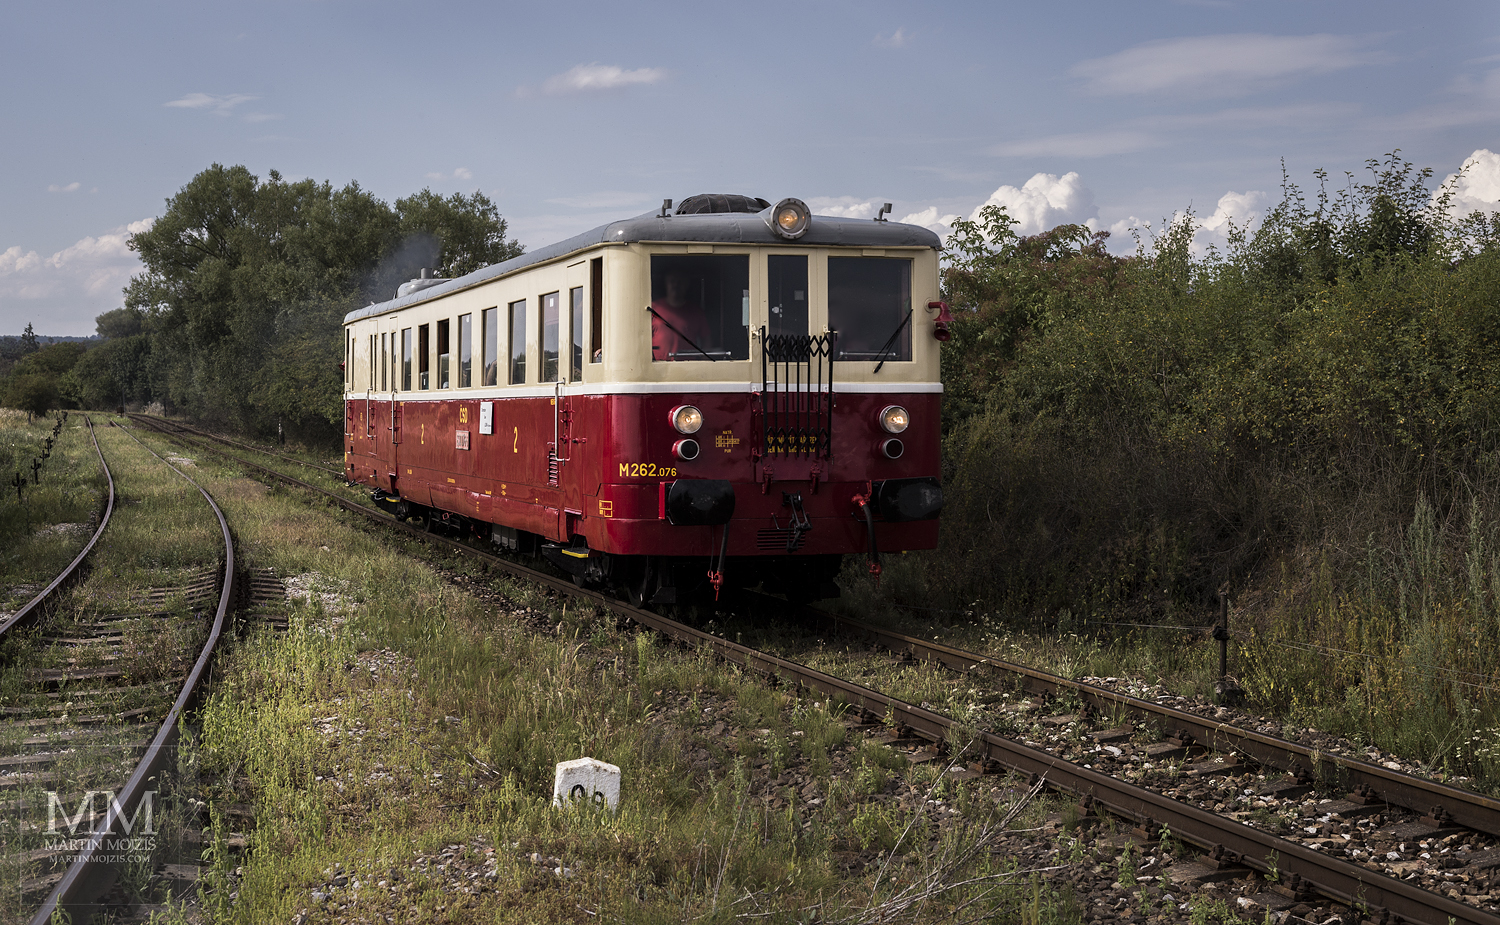 Large format, fine art photograph of small yellow and red train. Martin Mojzis.